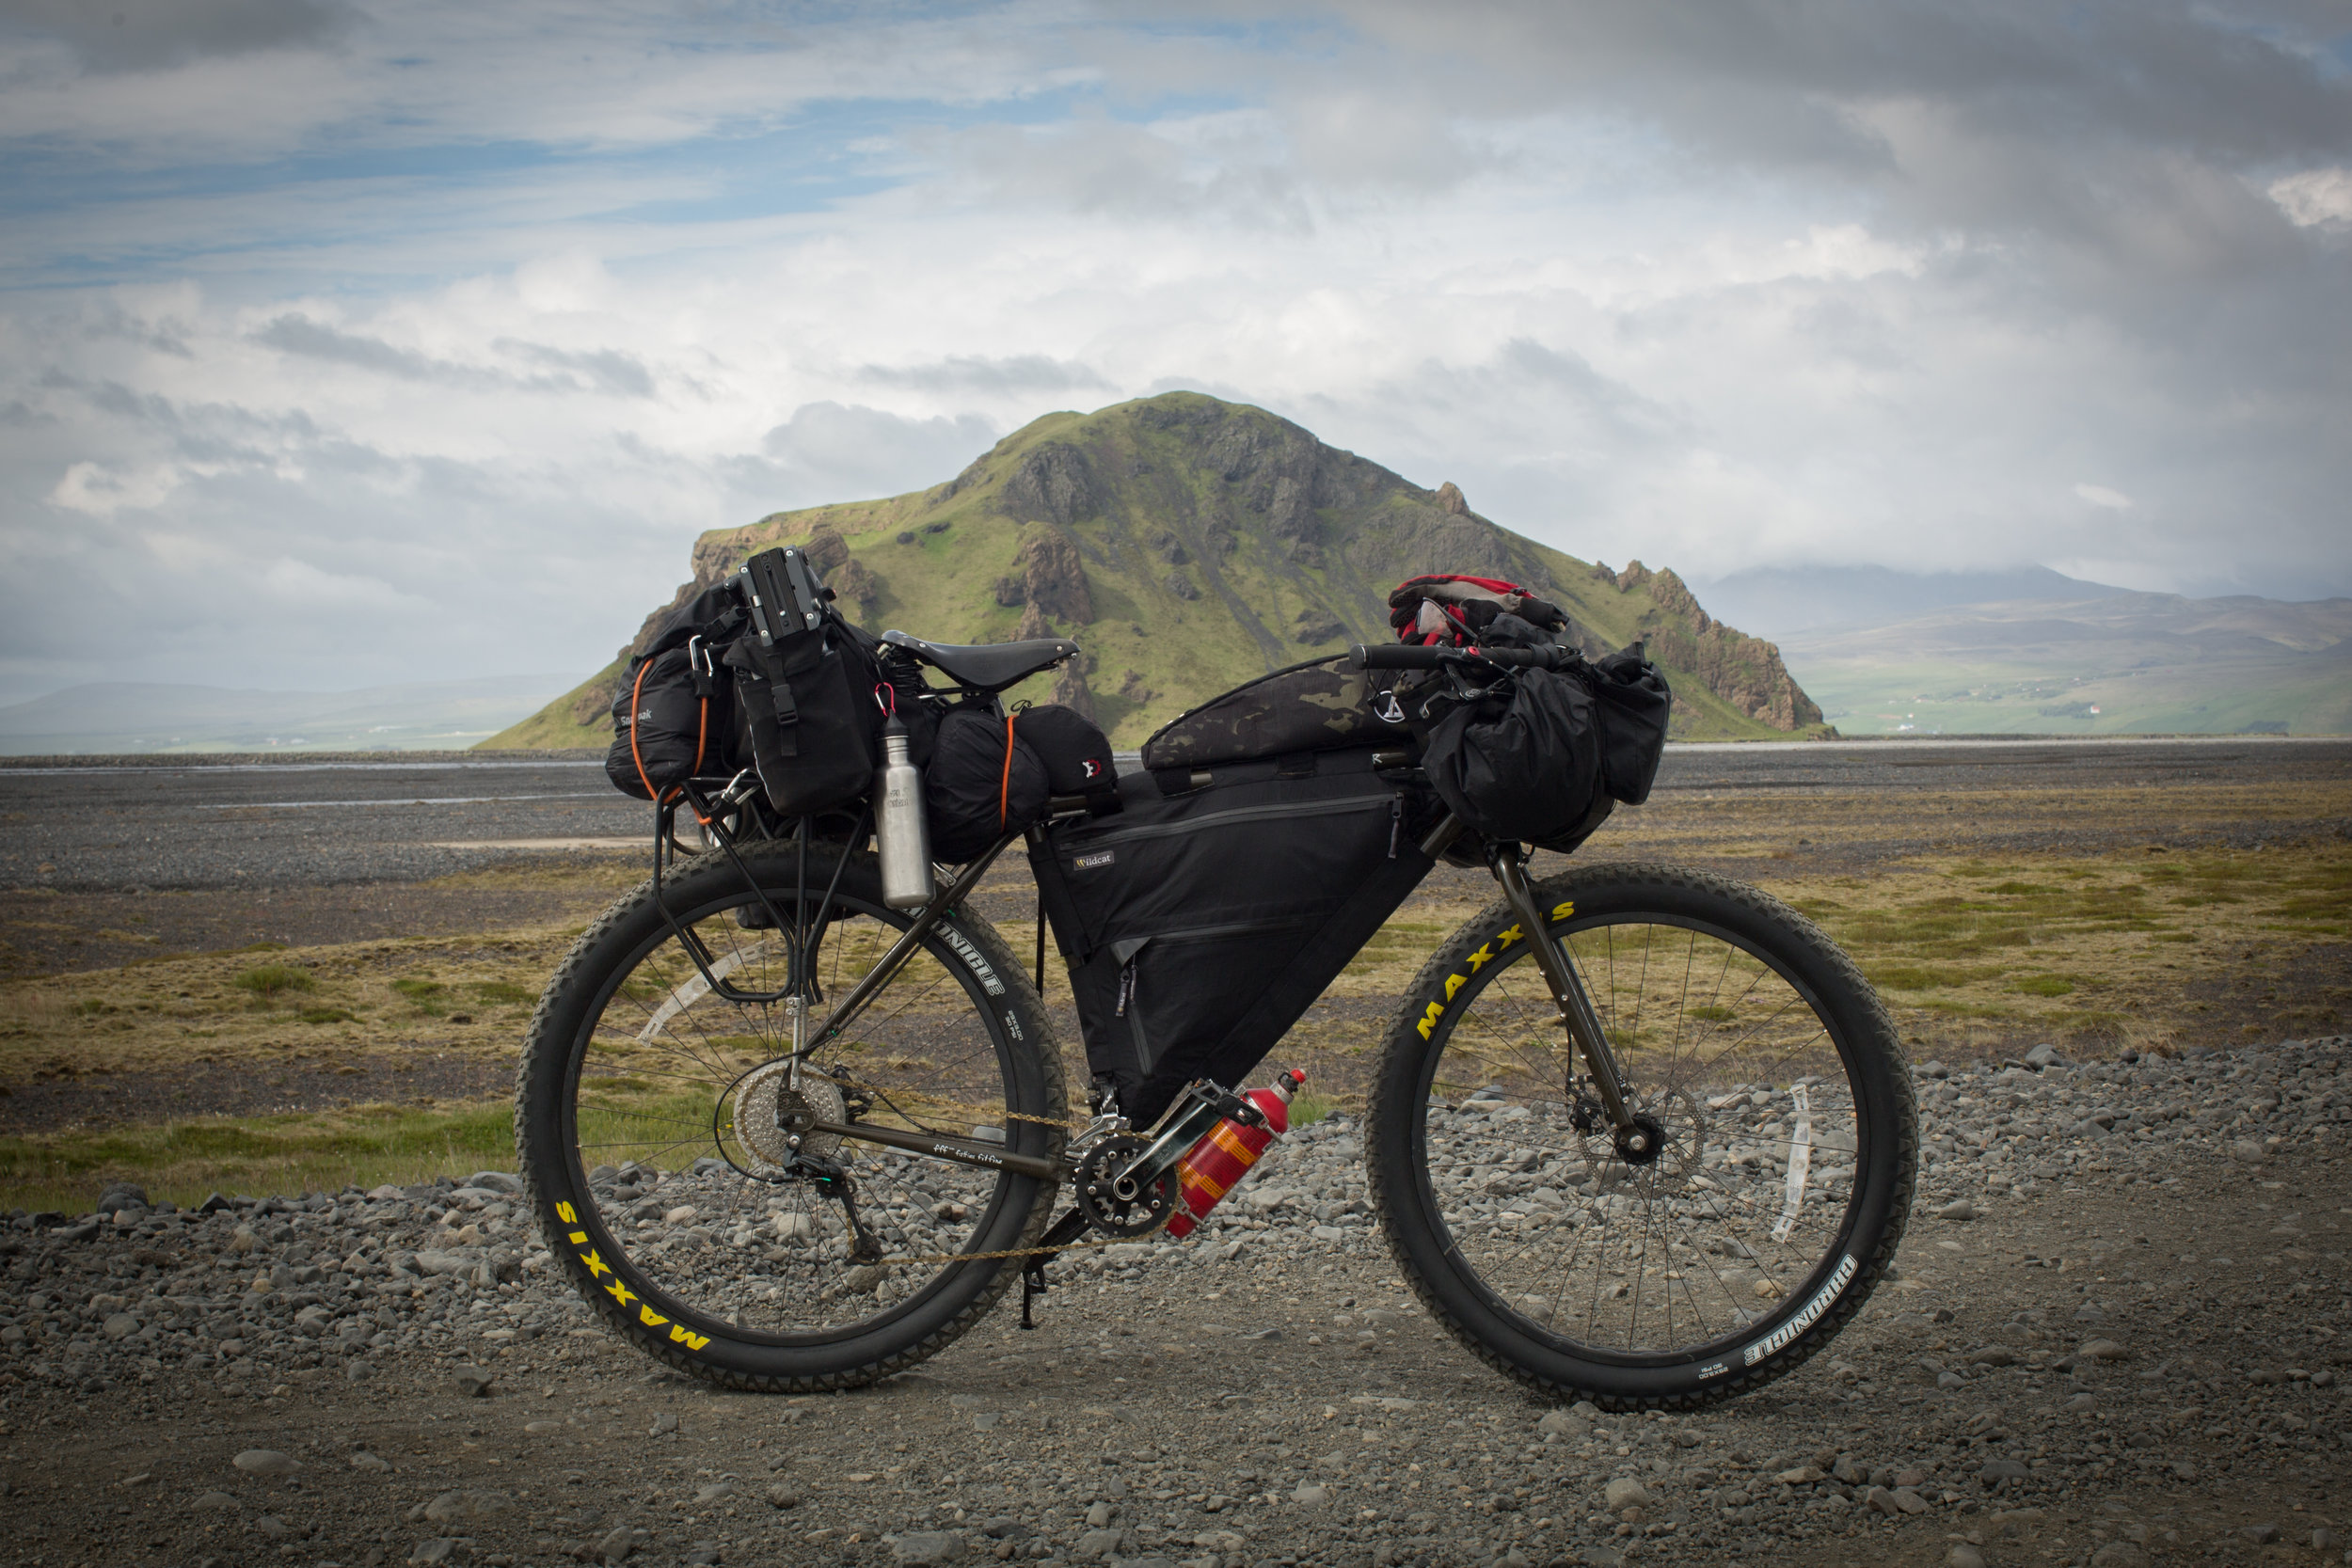 bikepacking, bikepacking blog, bicycle touring, bicycle touring blog, van life, jack mac, jack macgowan, cycling, bicycle, surly, surly bikes, iceland, bikepacking iceland, cycling icealnd, 29er, fat bike, steel frame, bikepacking gear, blog, travel writer, bicycle touring apocalypse, iceland,